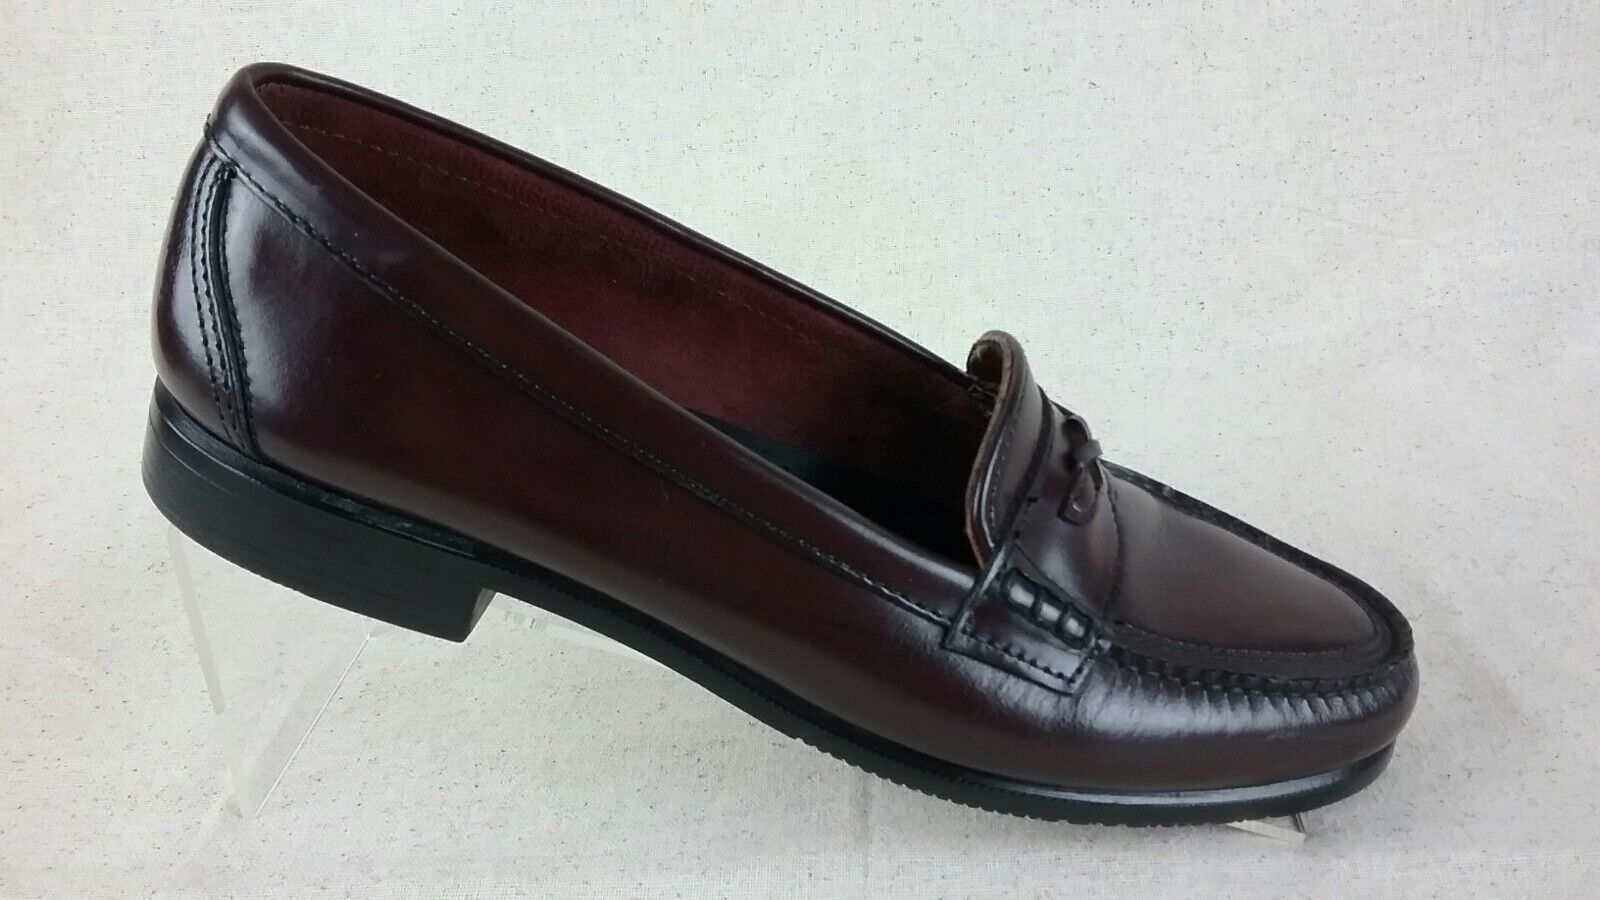 G H Bass Leather Oxblood Casual Loafers Slip On Womens 9 N Narrow shoes R5S4